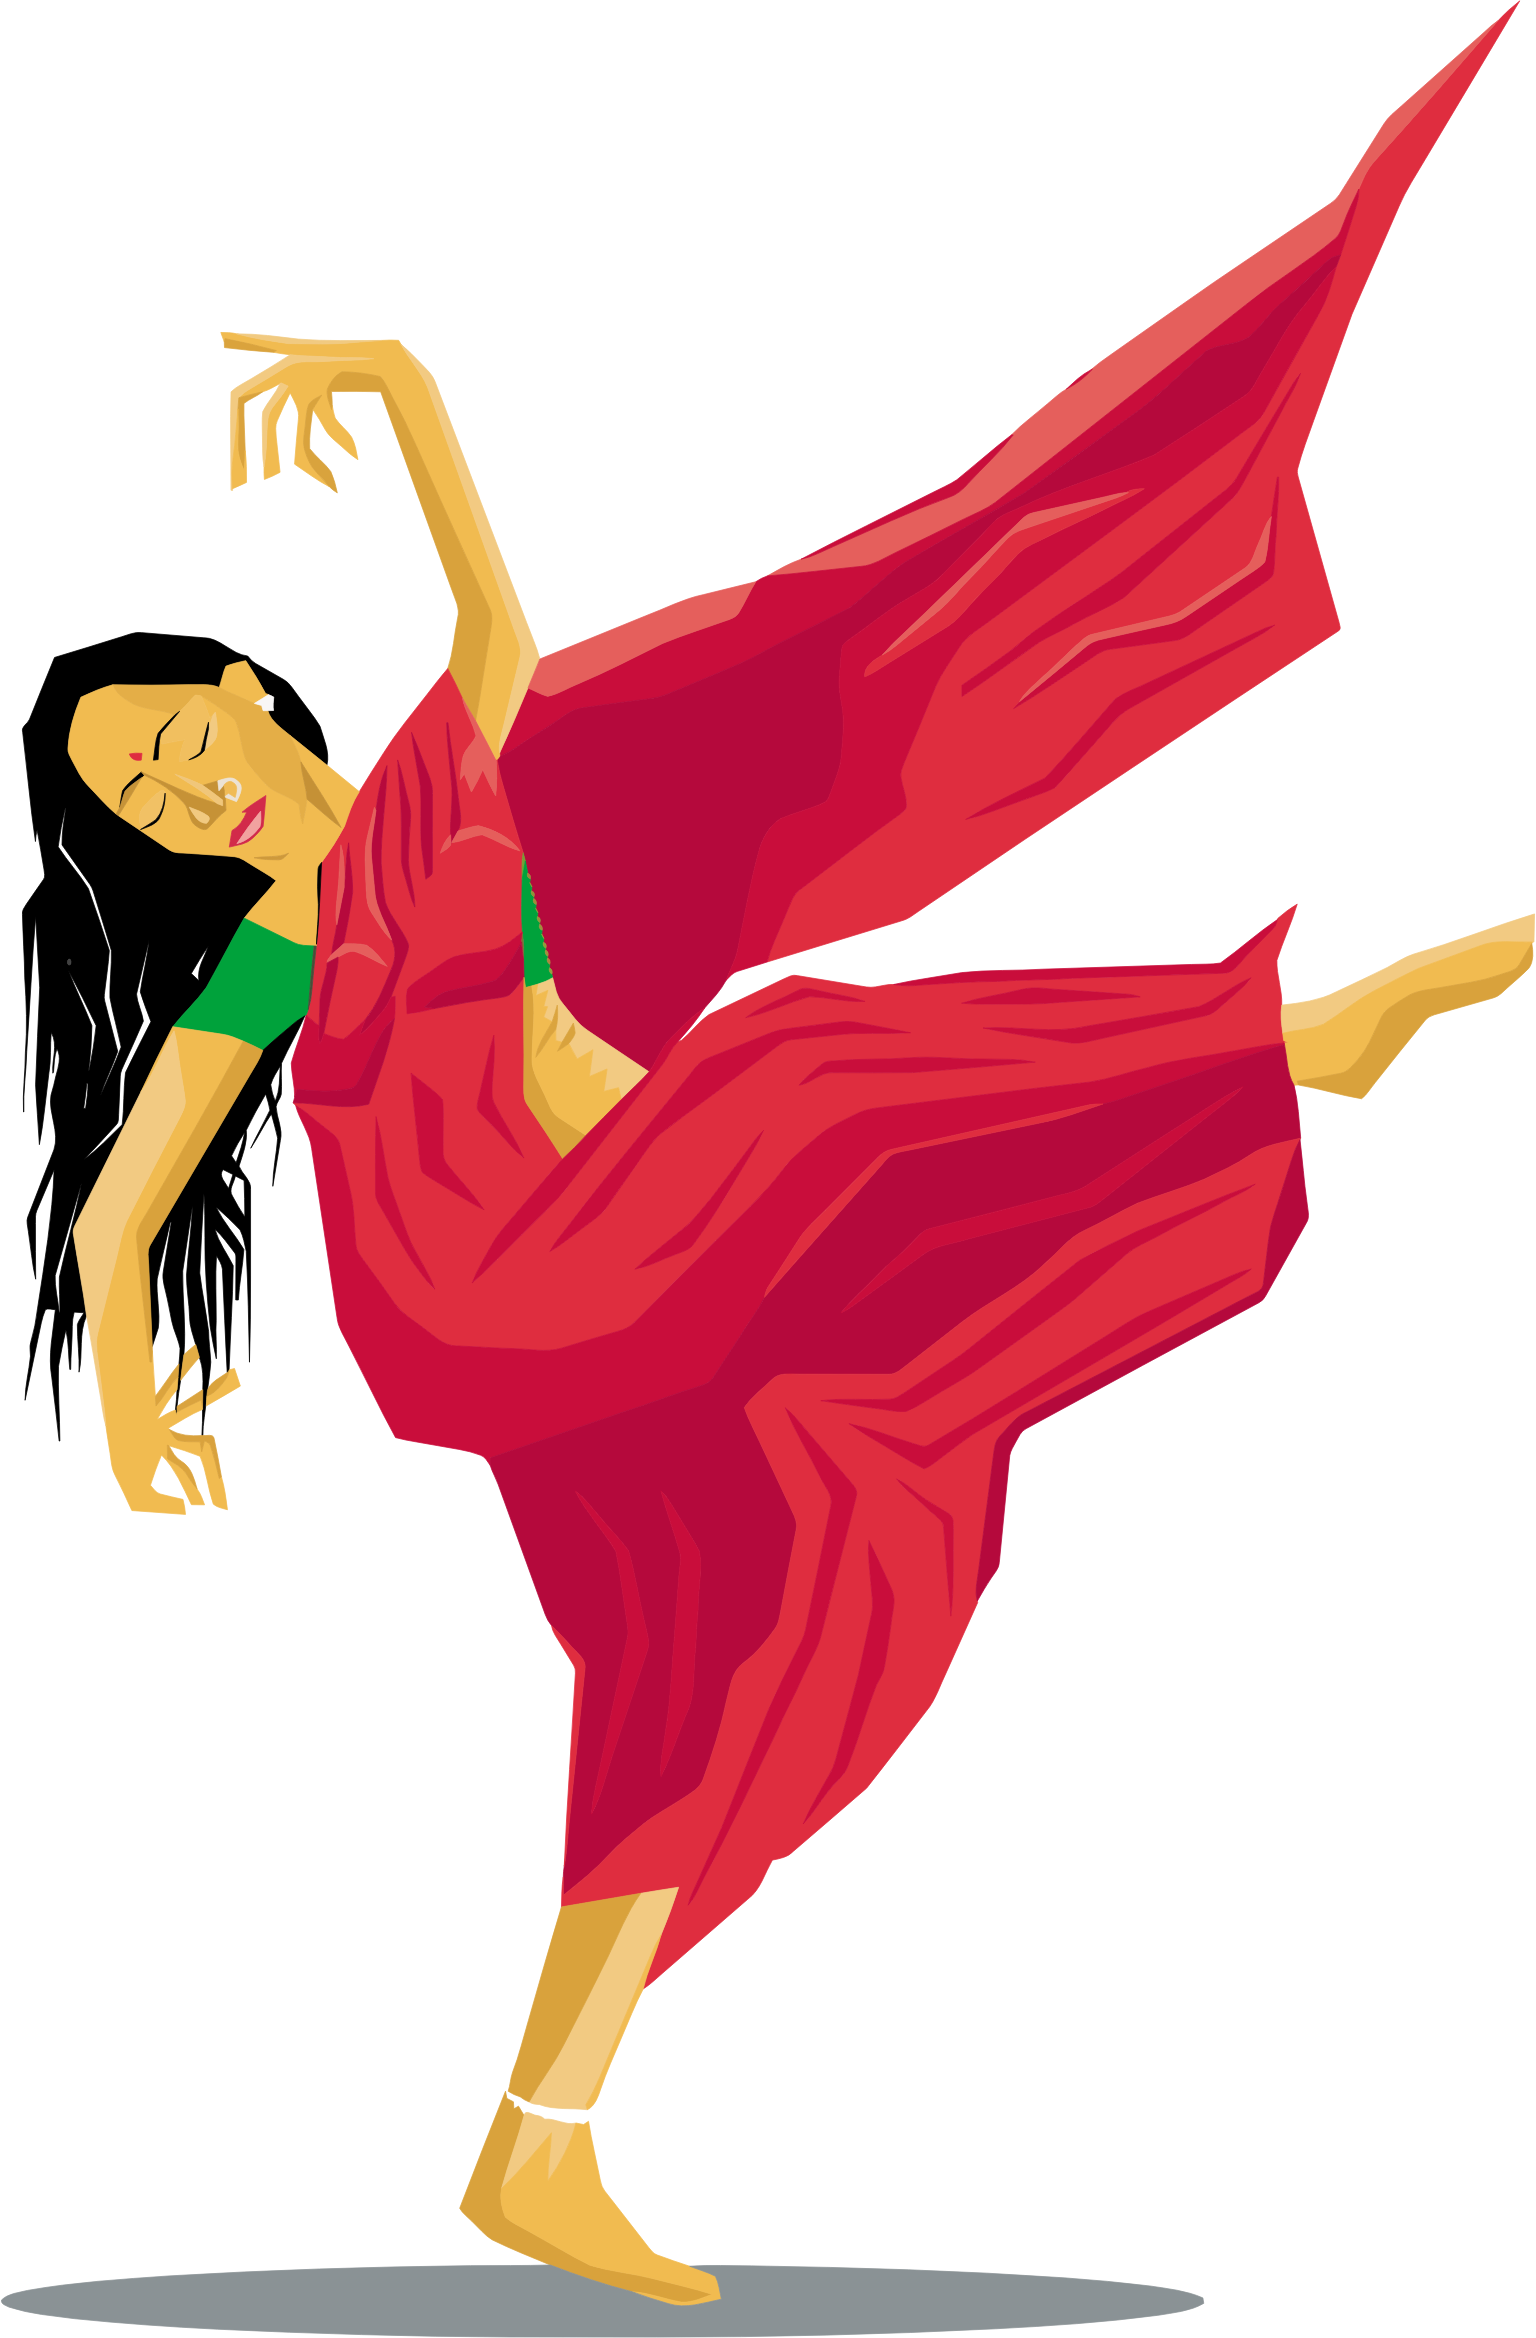 Indian dancing big image. Dancer clipart lady dance jpg library